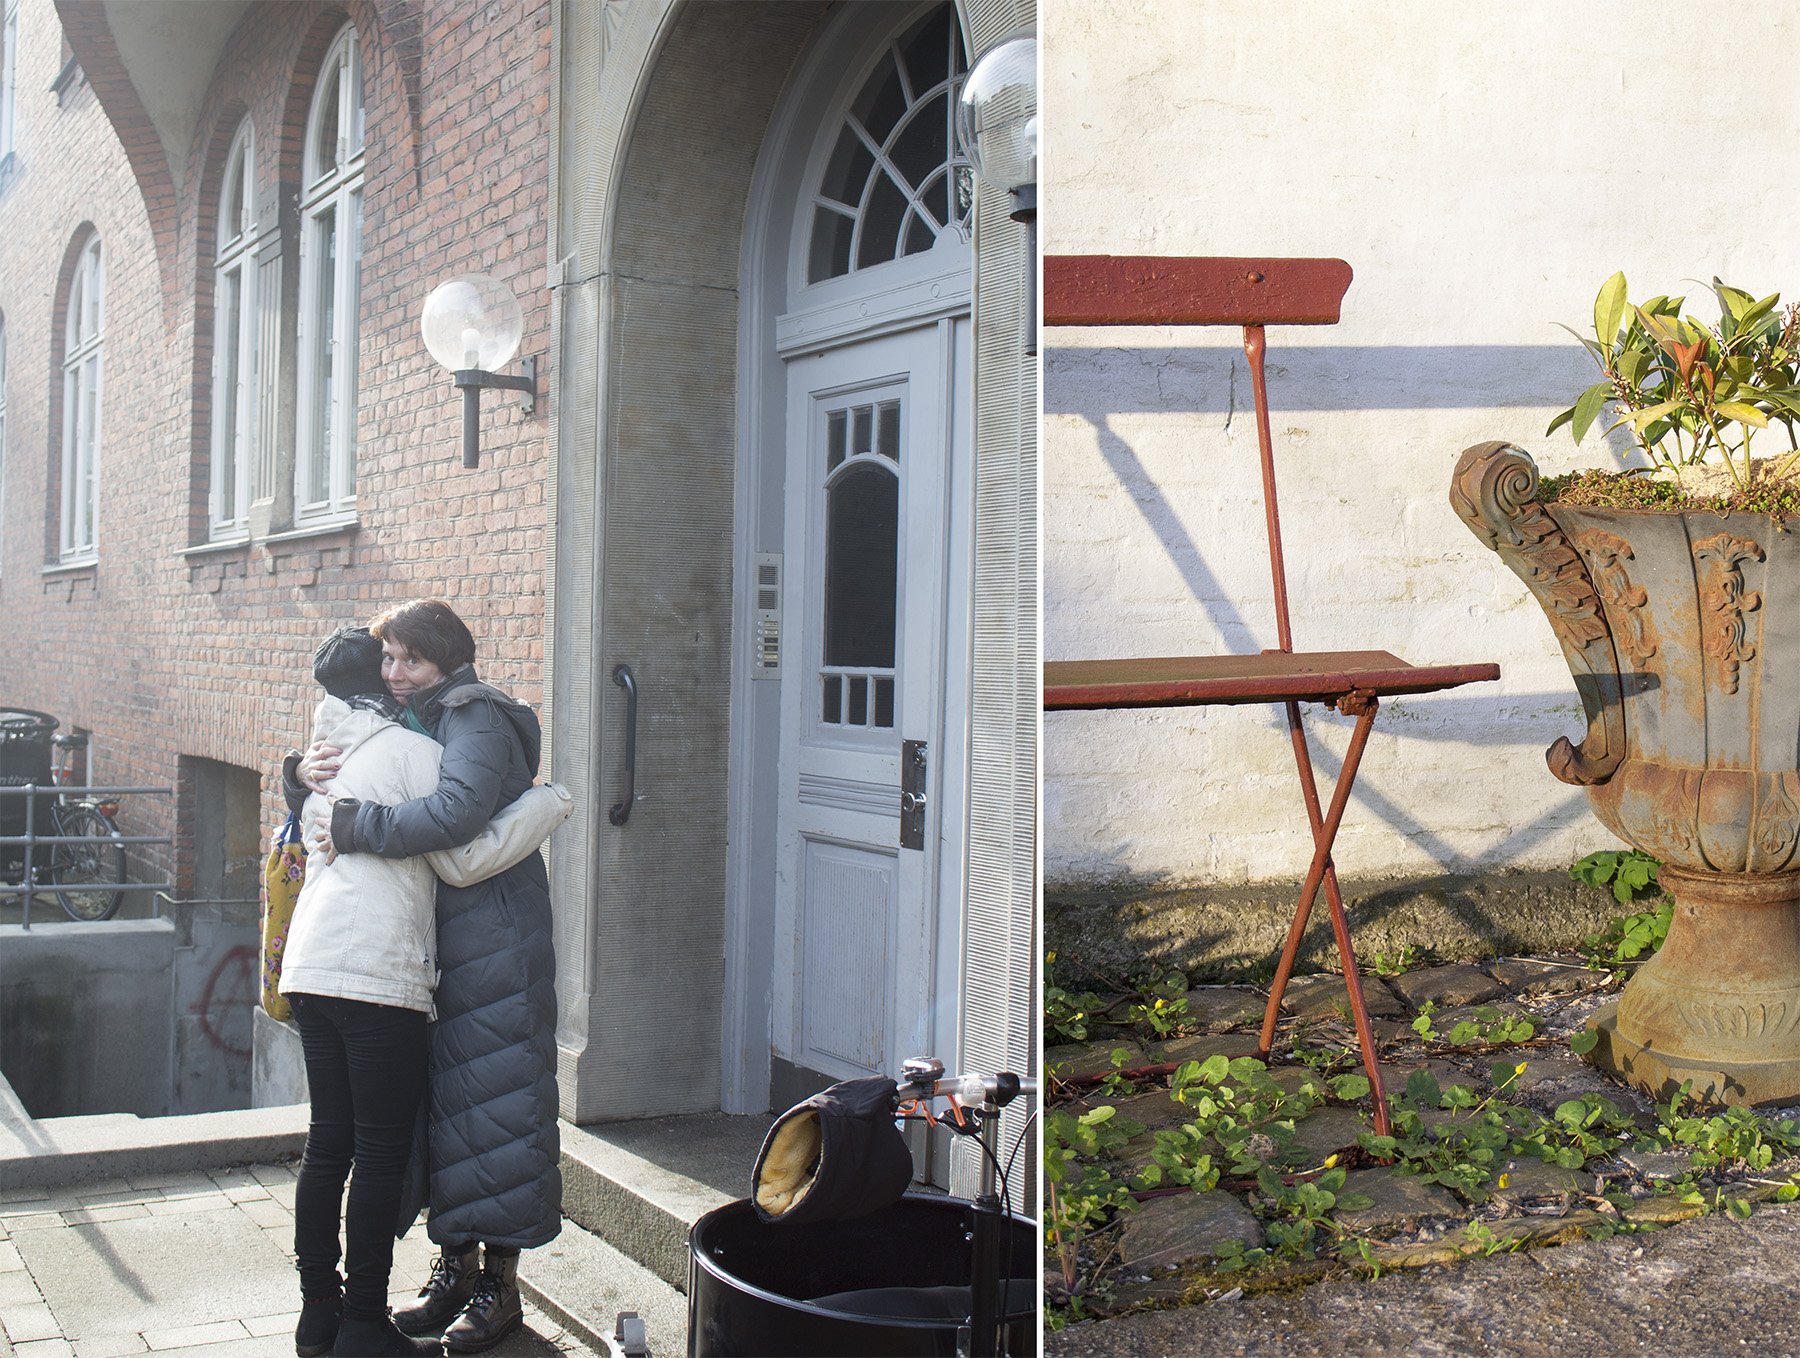 Kær founder, Marianne Møllmann, at her childhood home in Denmark, in February 2016, sharing an emotional moment with her daughter.